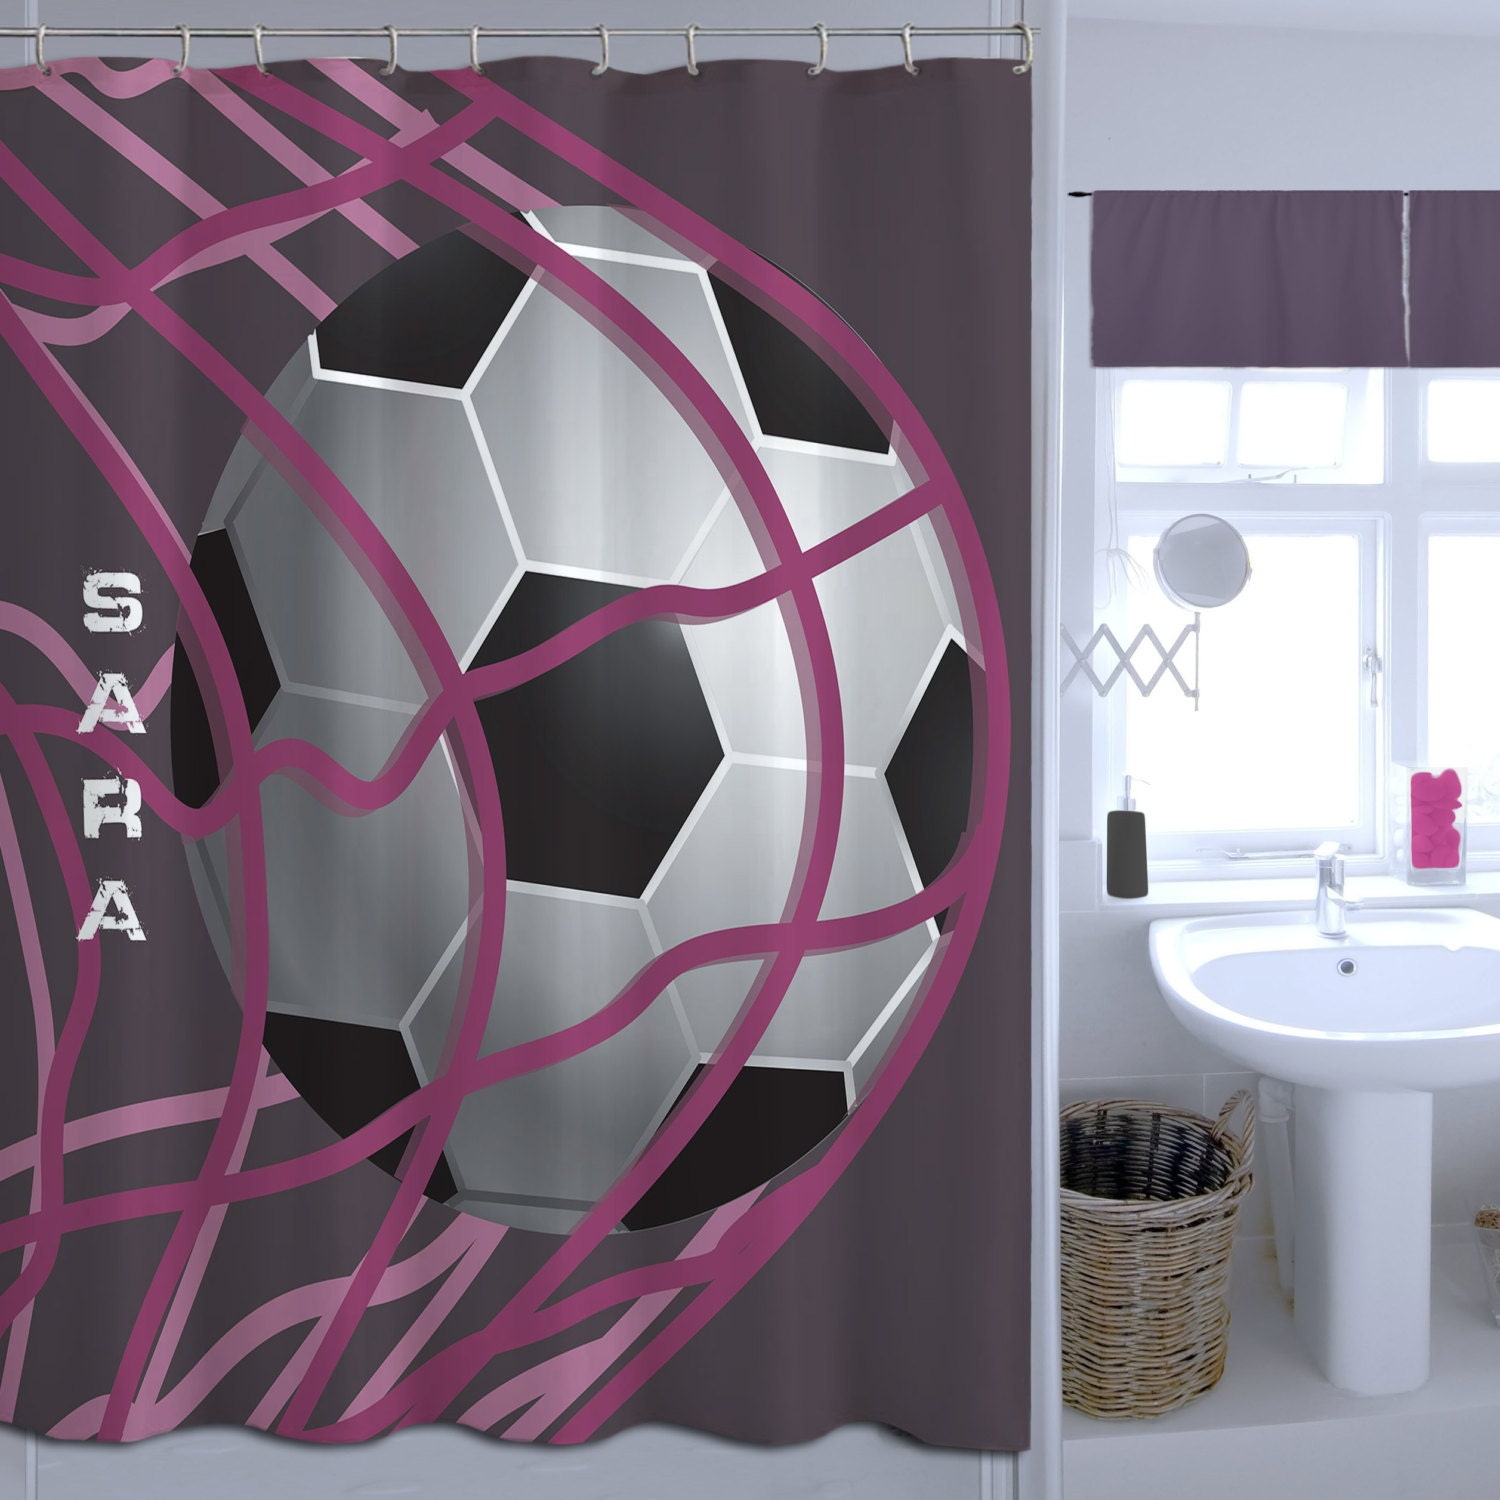 girls soccer shower curtain monogrammed shower curtain